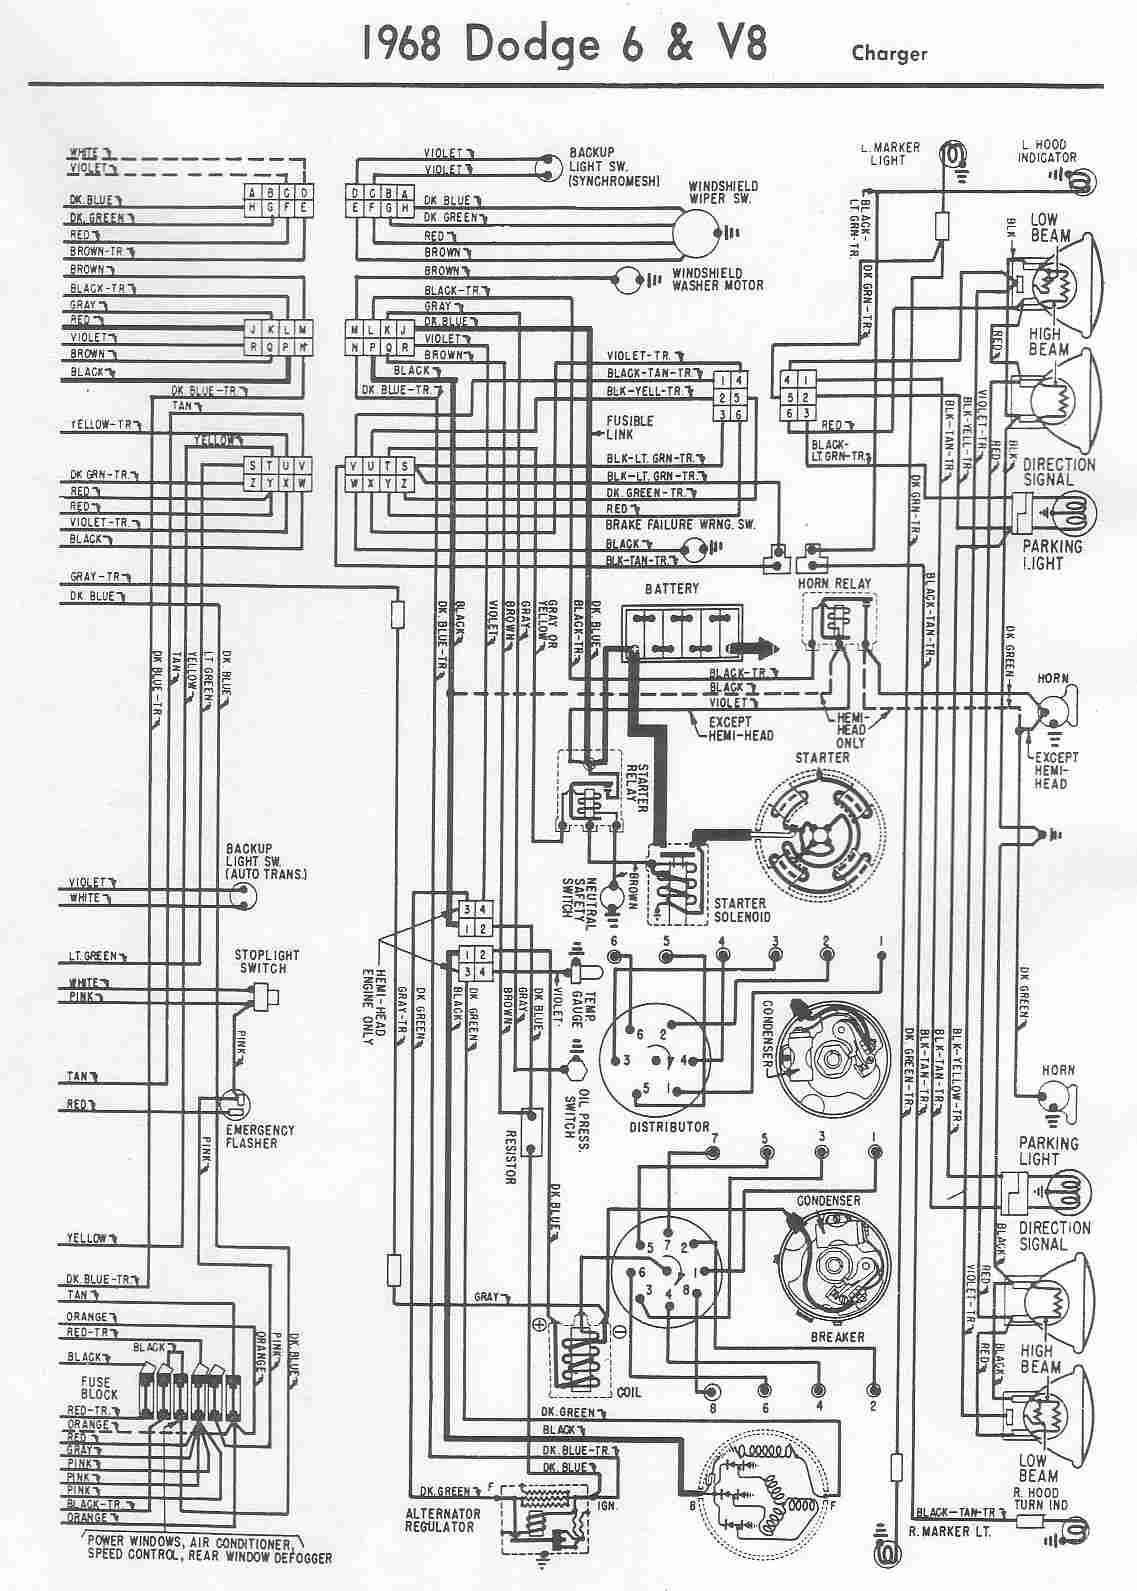 Coil On Plug Wiring Diagram Acura additionally Electrical Schematic Symbol Key Switch likewise Te Connectivity Tyco Electronics 12 Vdc 5 Pin Relay Spdt 20 30a  formerly Bosch  330 070 additionally 1973 Dodge Dart Swinger Wiring Diagram Wiring Diagrams together with Sc lookup. on honda wiring diagrams automotive